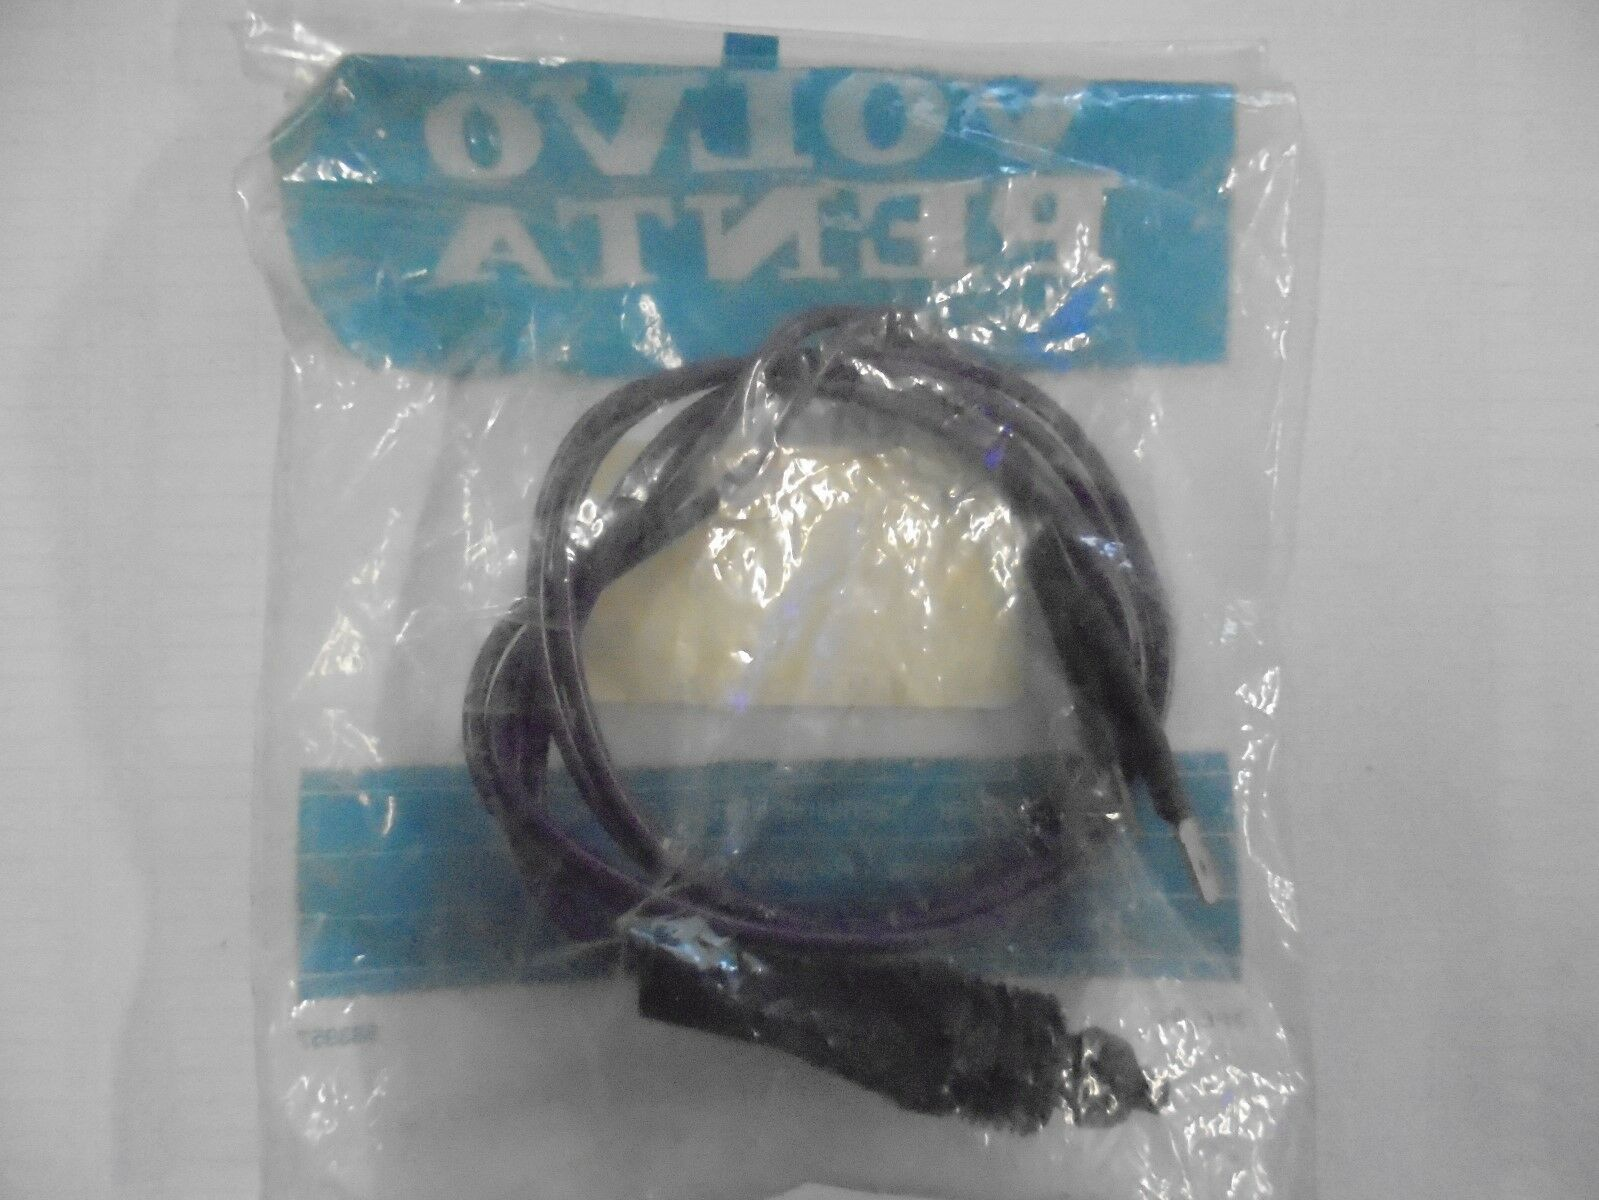 Volvo Penta Toggle Switch Wire Wiring Harness 3858776 Ebay 350 Norton Secured Powered By Verisign